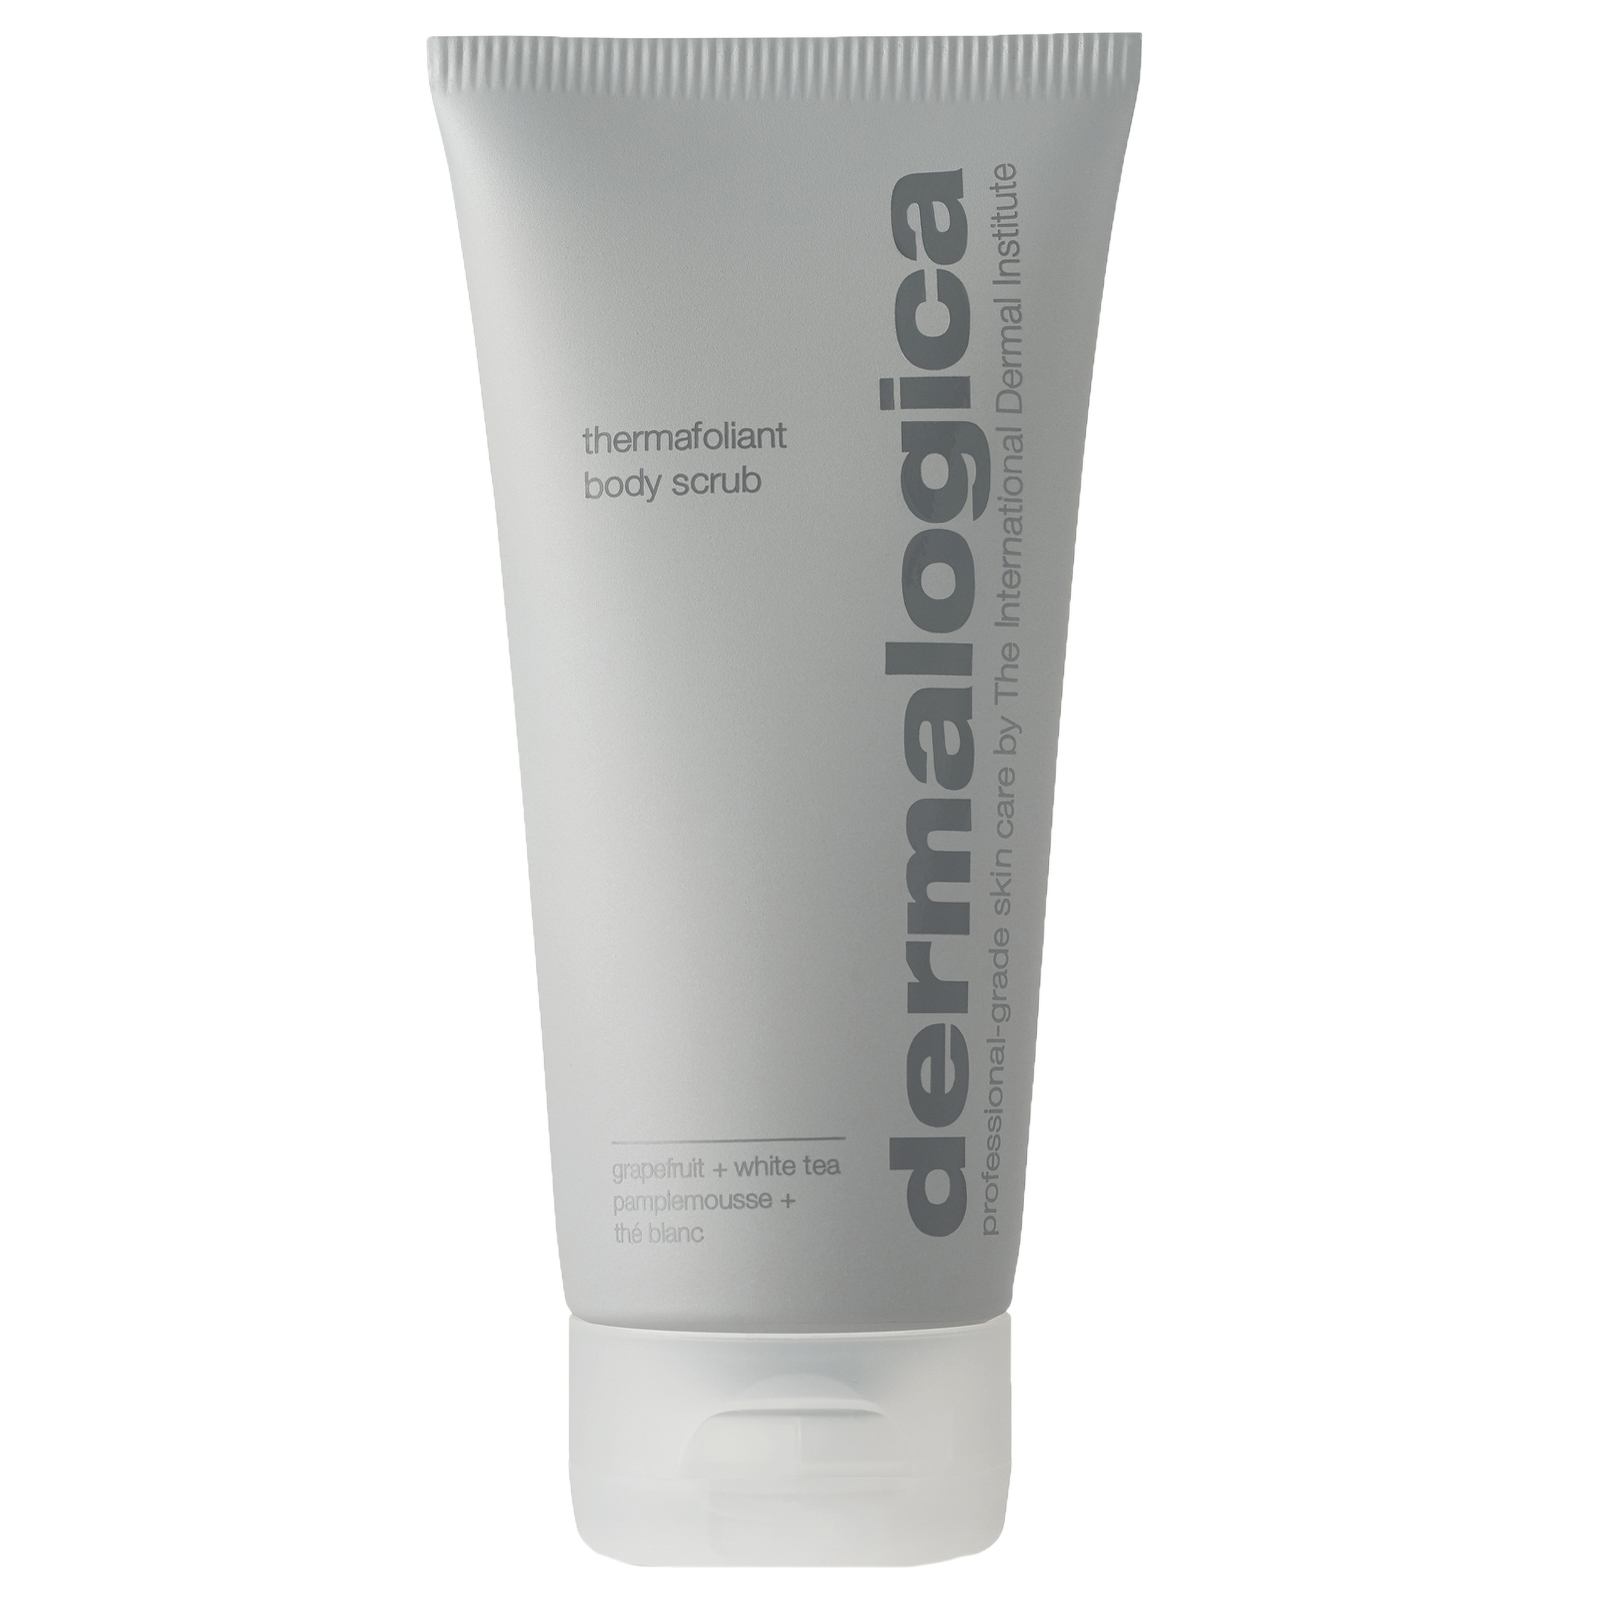 Dermalogica Body Therapy Thermafoliant Body Scrub 177ml